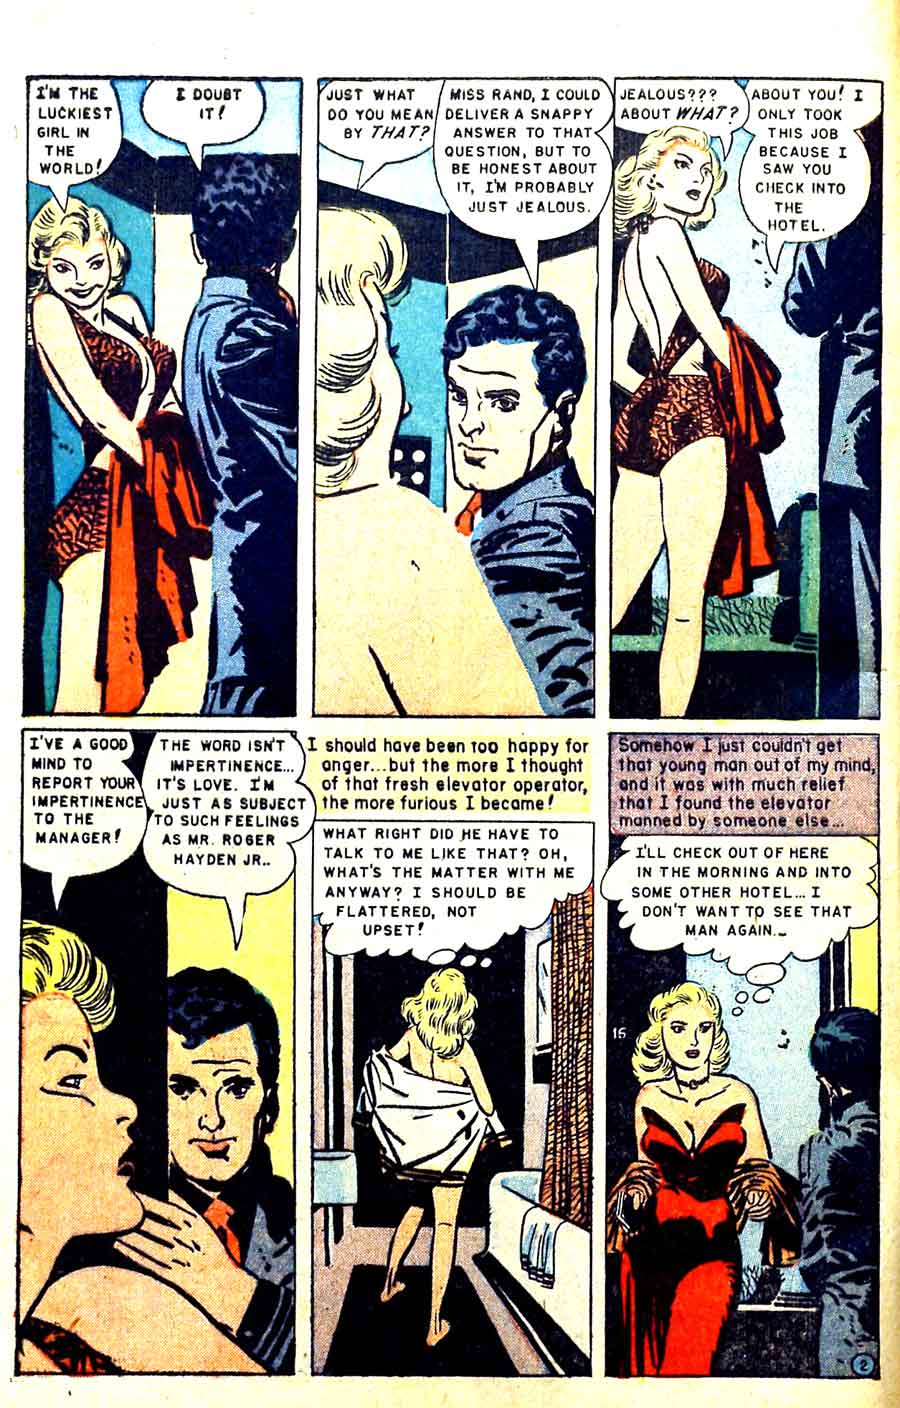 Personal Love v1 #11 golden age romance comic book page art by Alex Toth